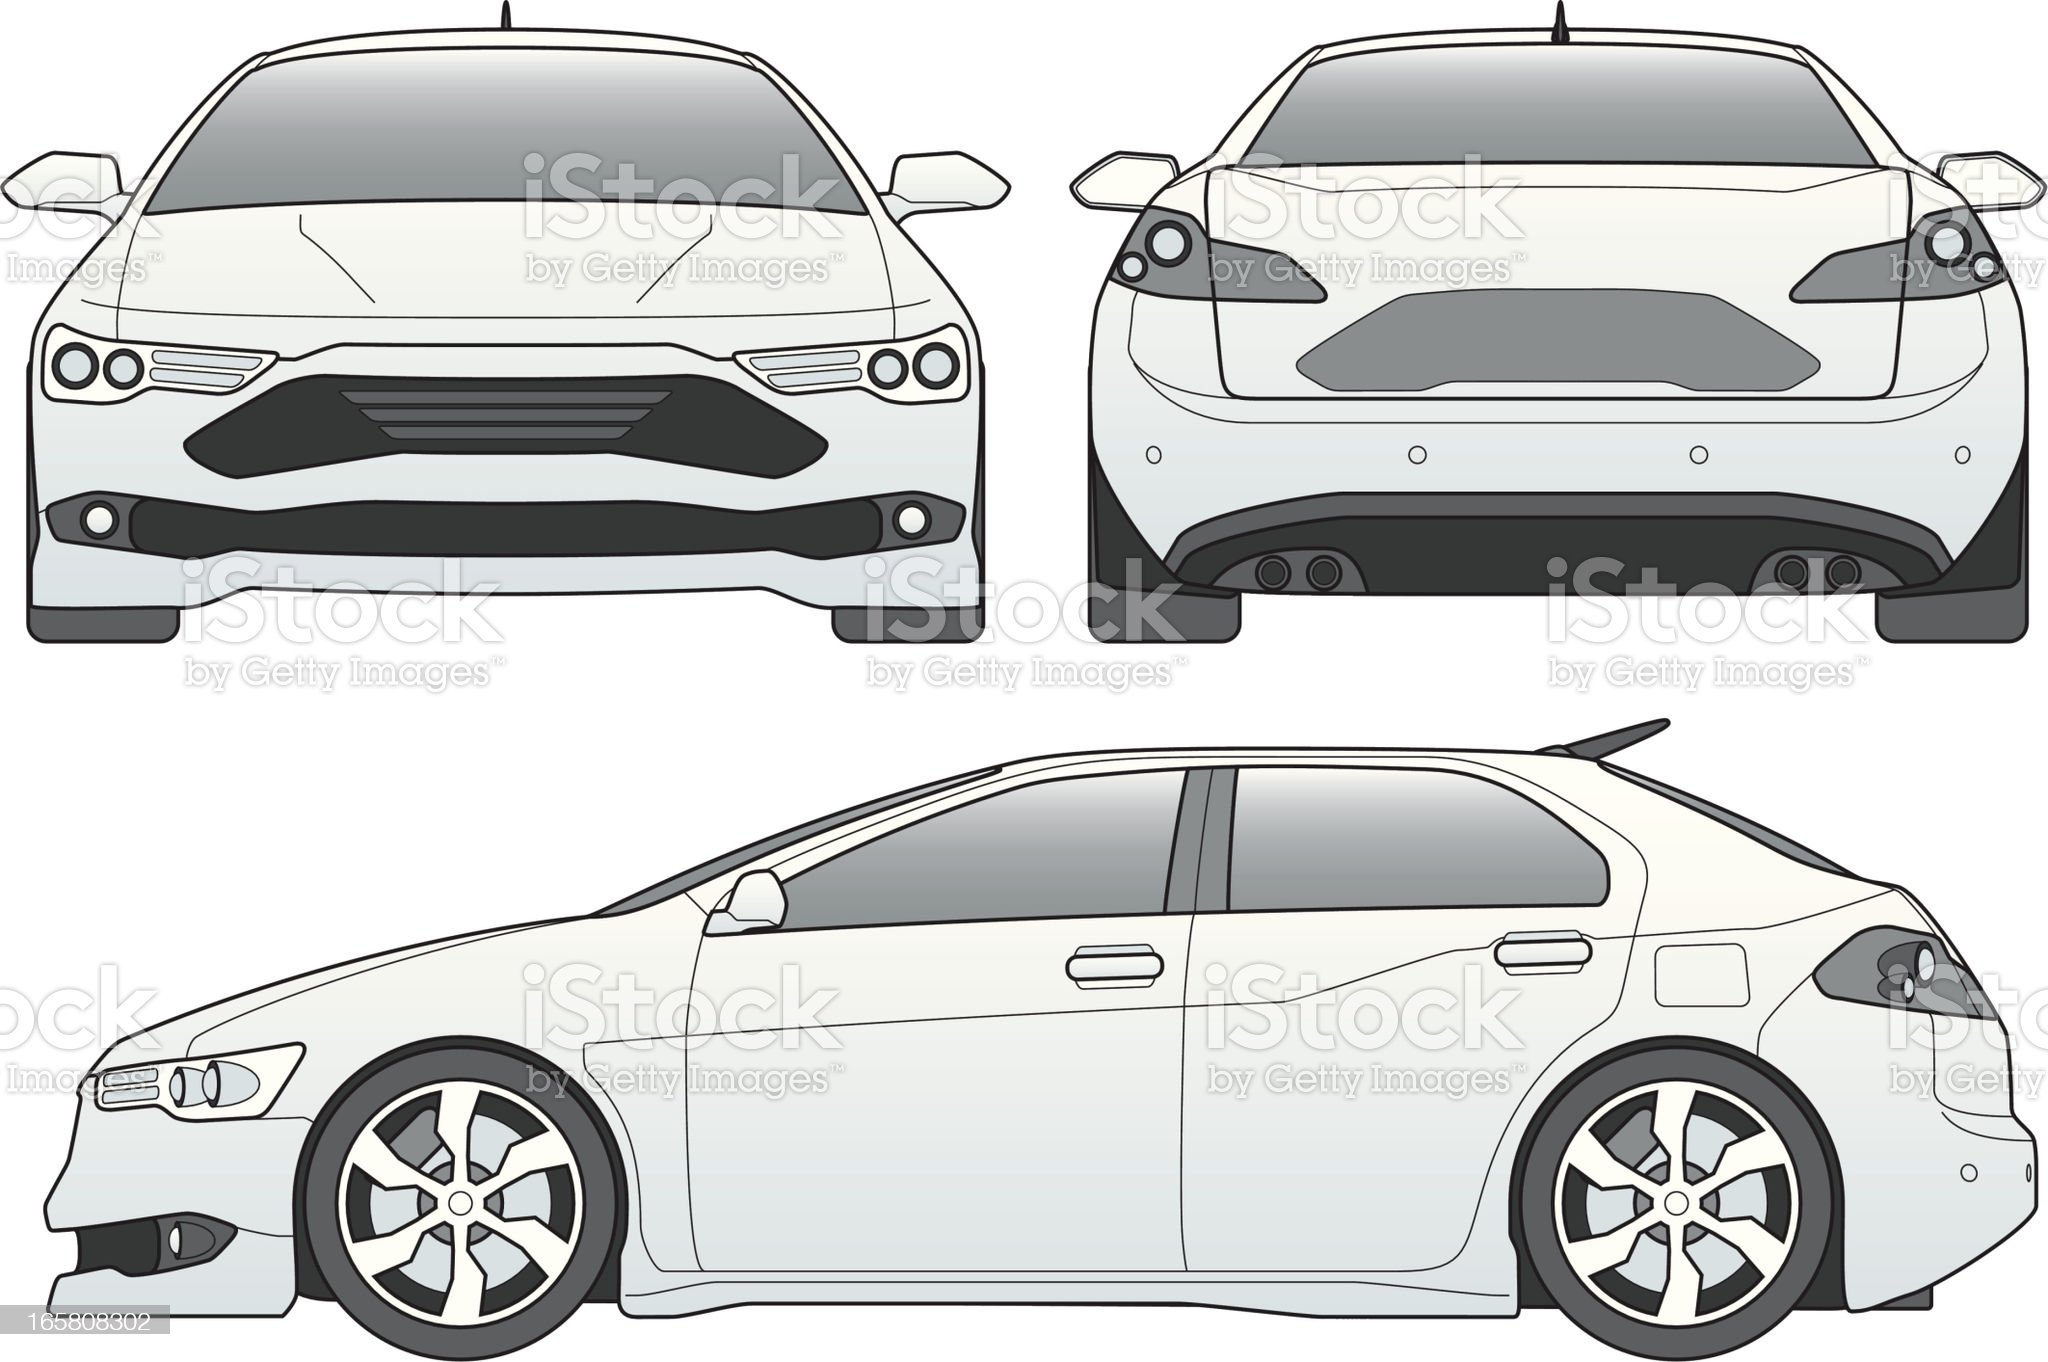 car line art royalty-free stock vector art